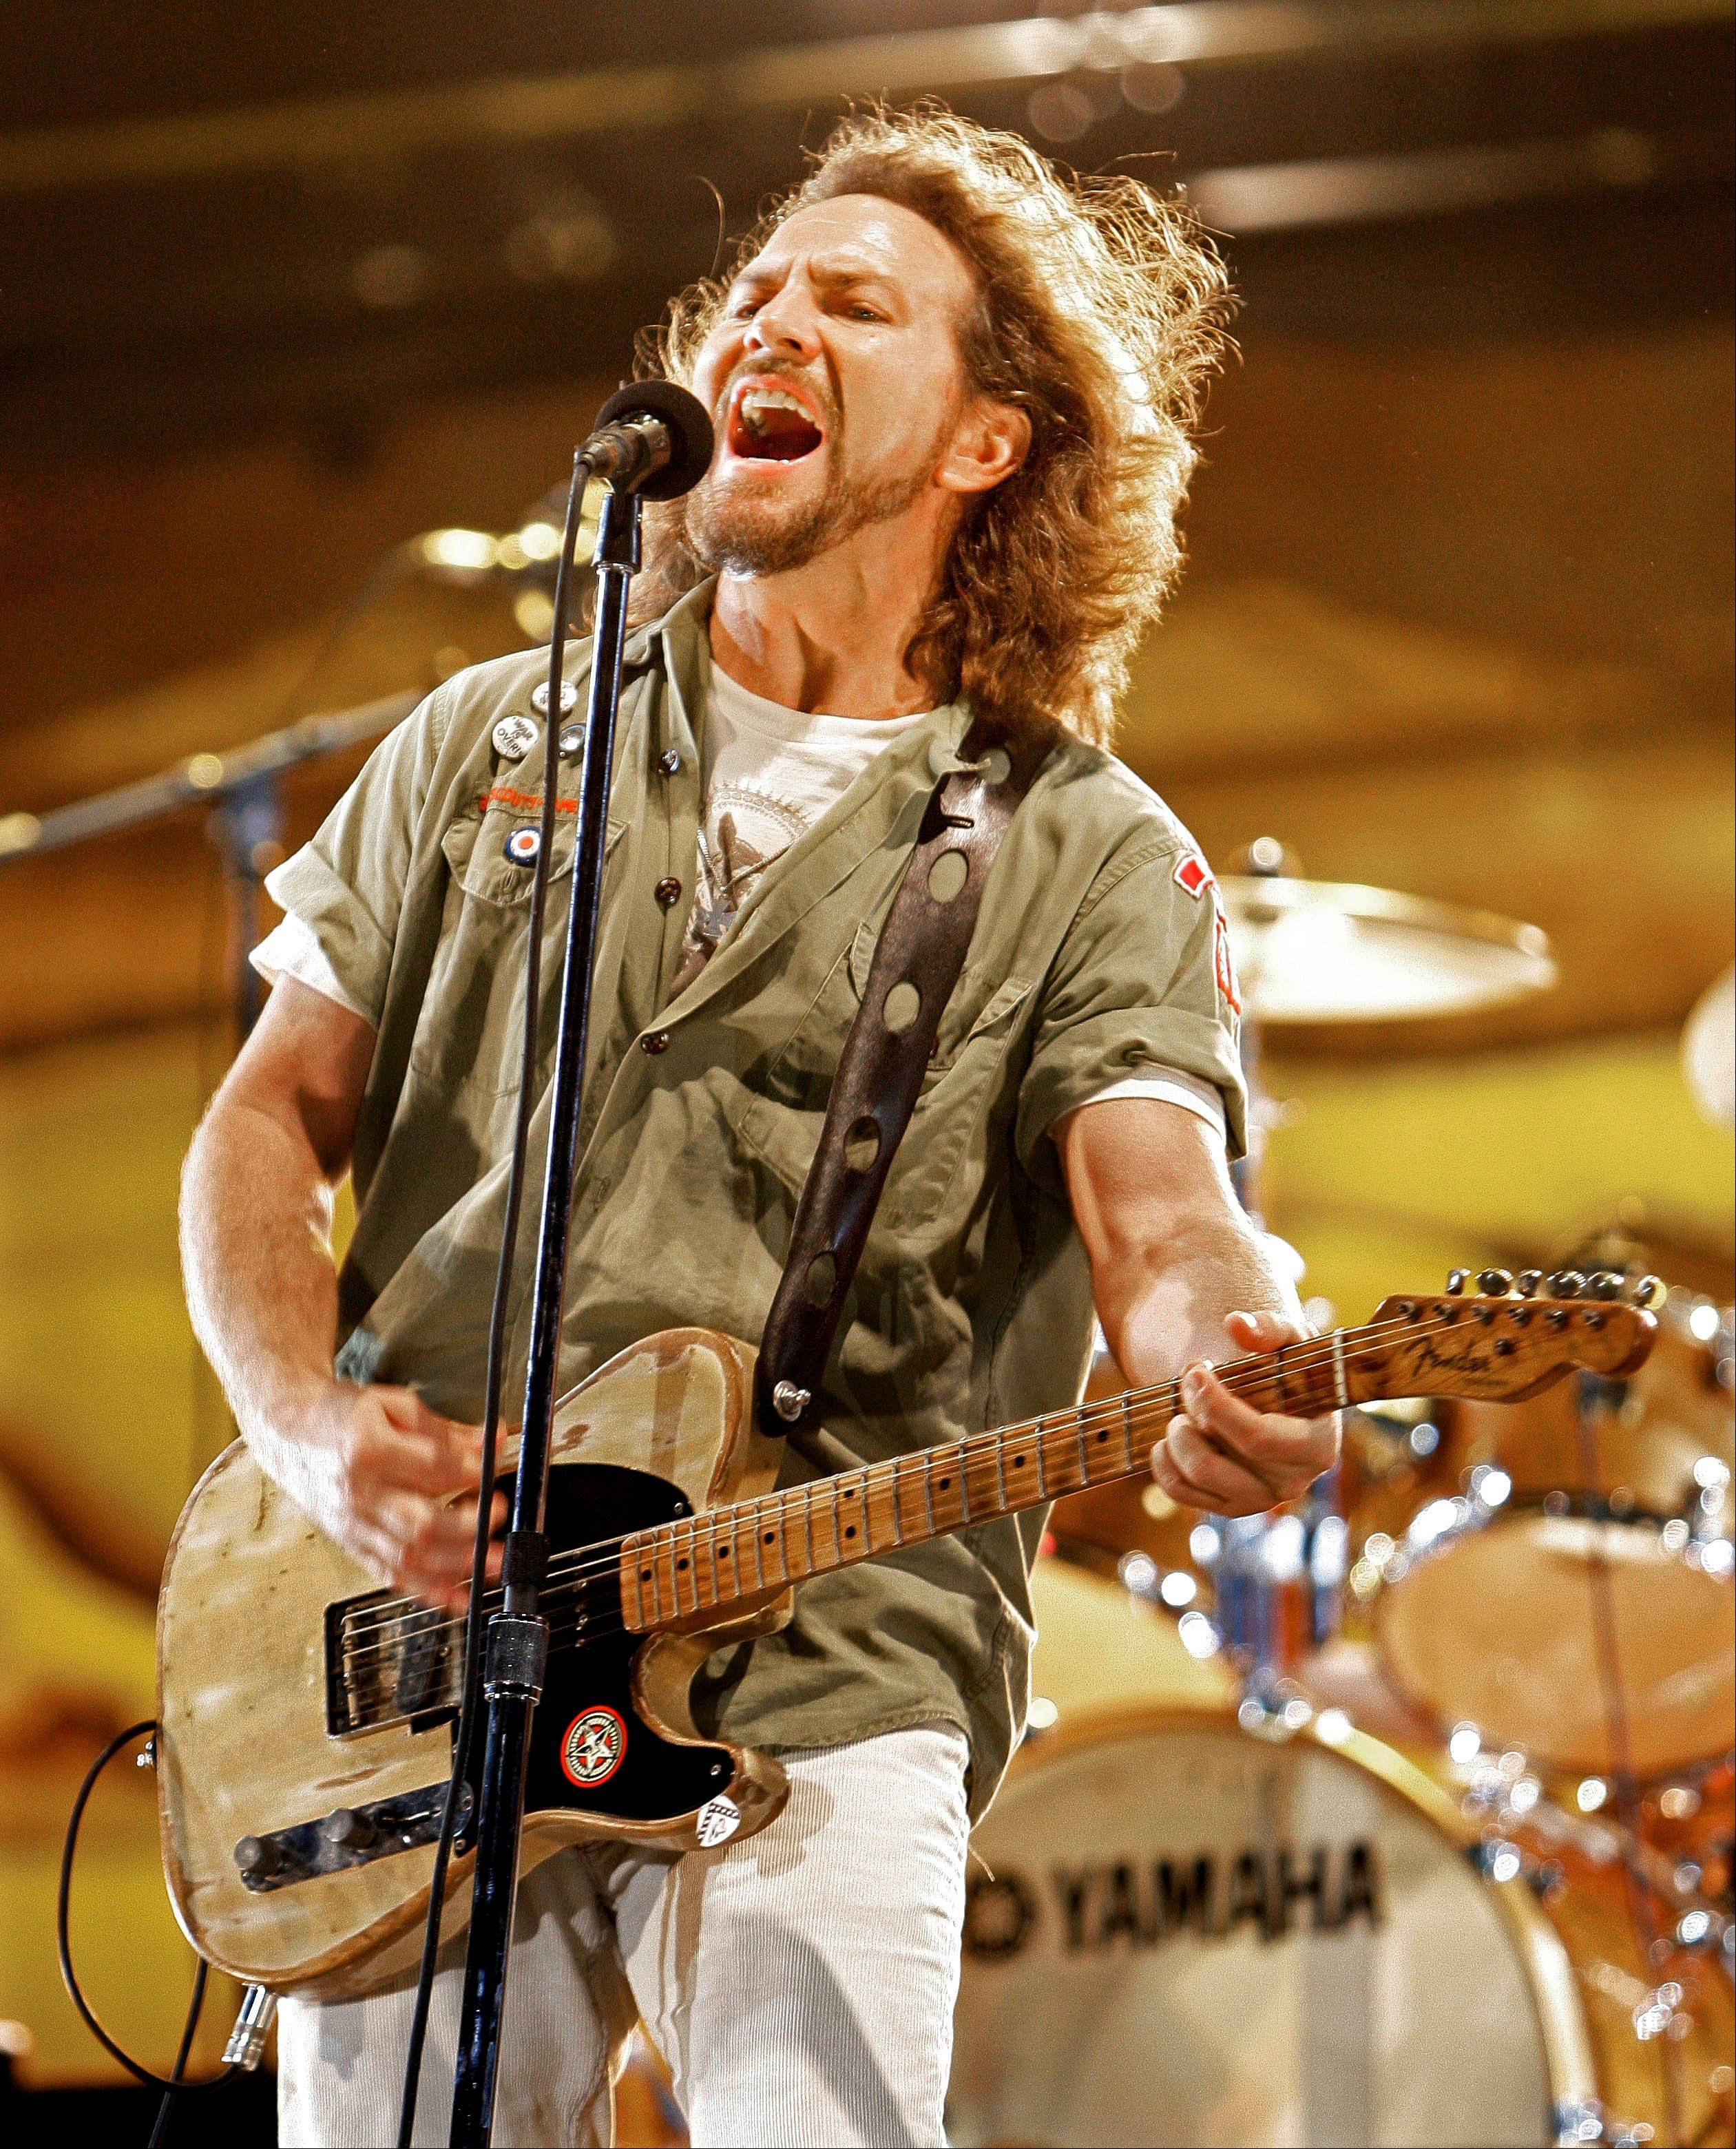 """Pearl Jam Twenty"" includes footage from throughout the band's career, including Eddie Vedder performing at the Bonnaroo music festival in 2008."